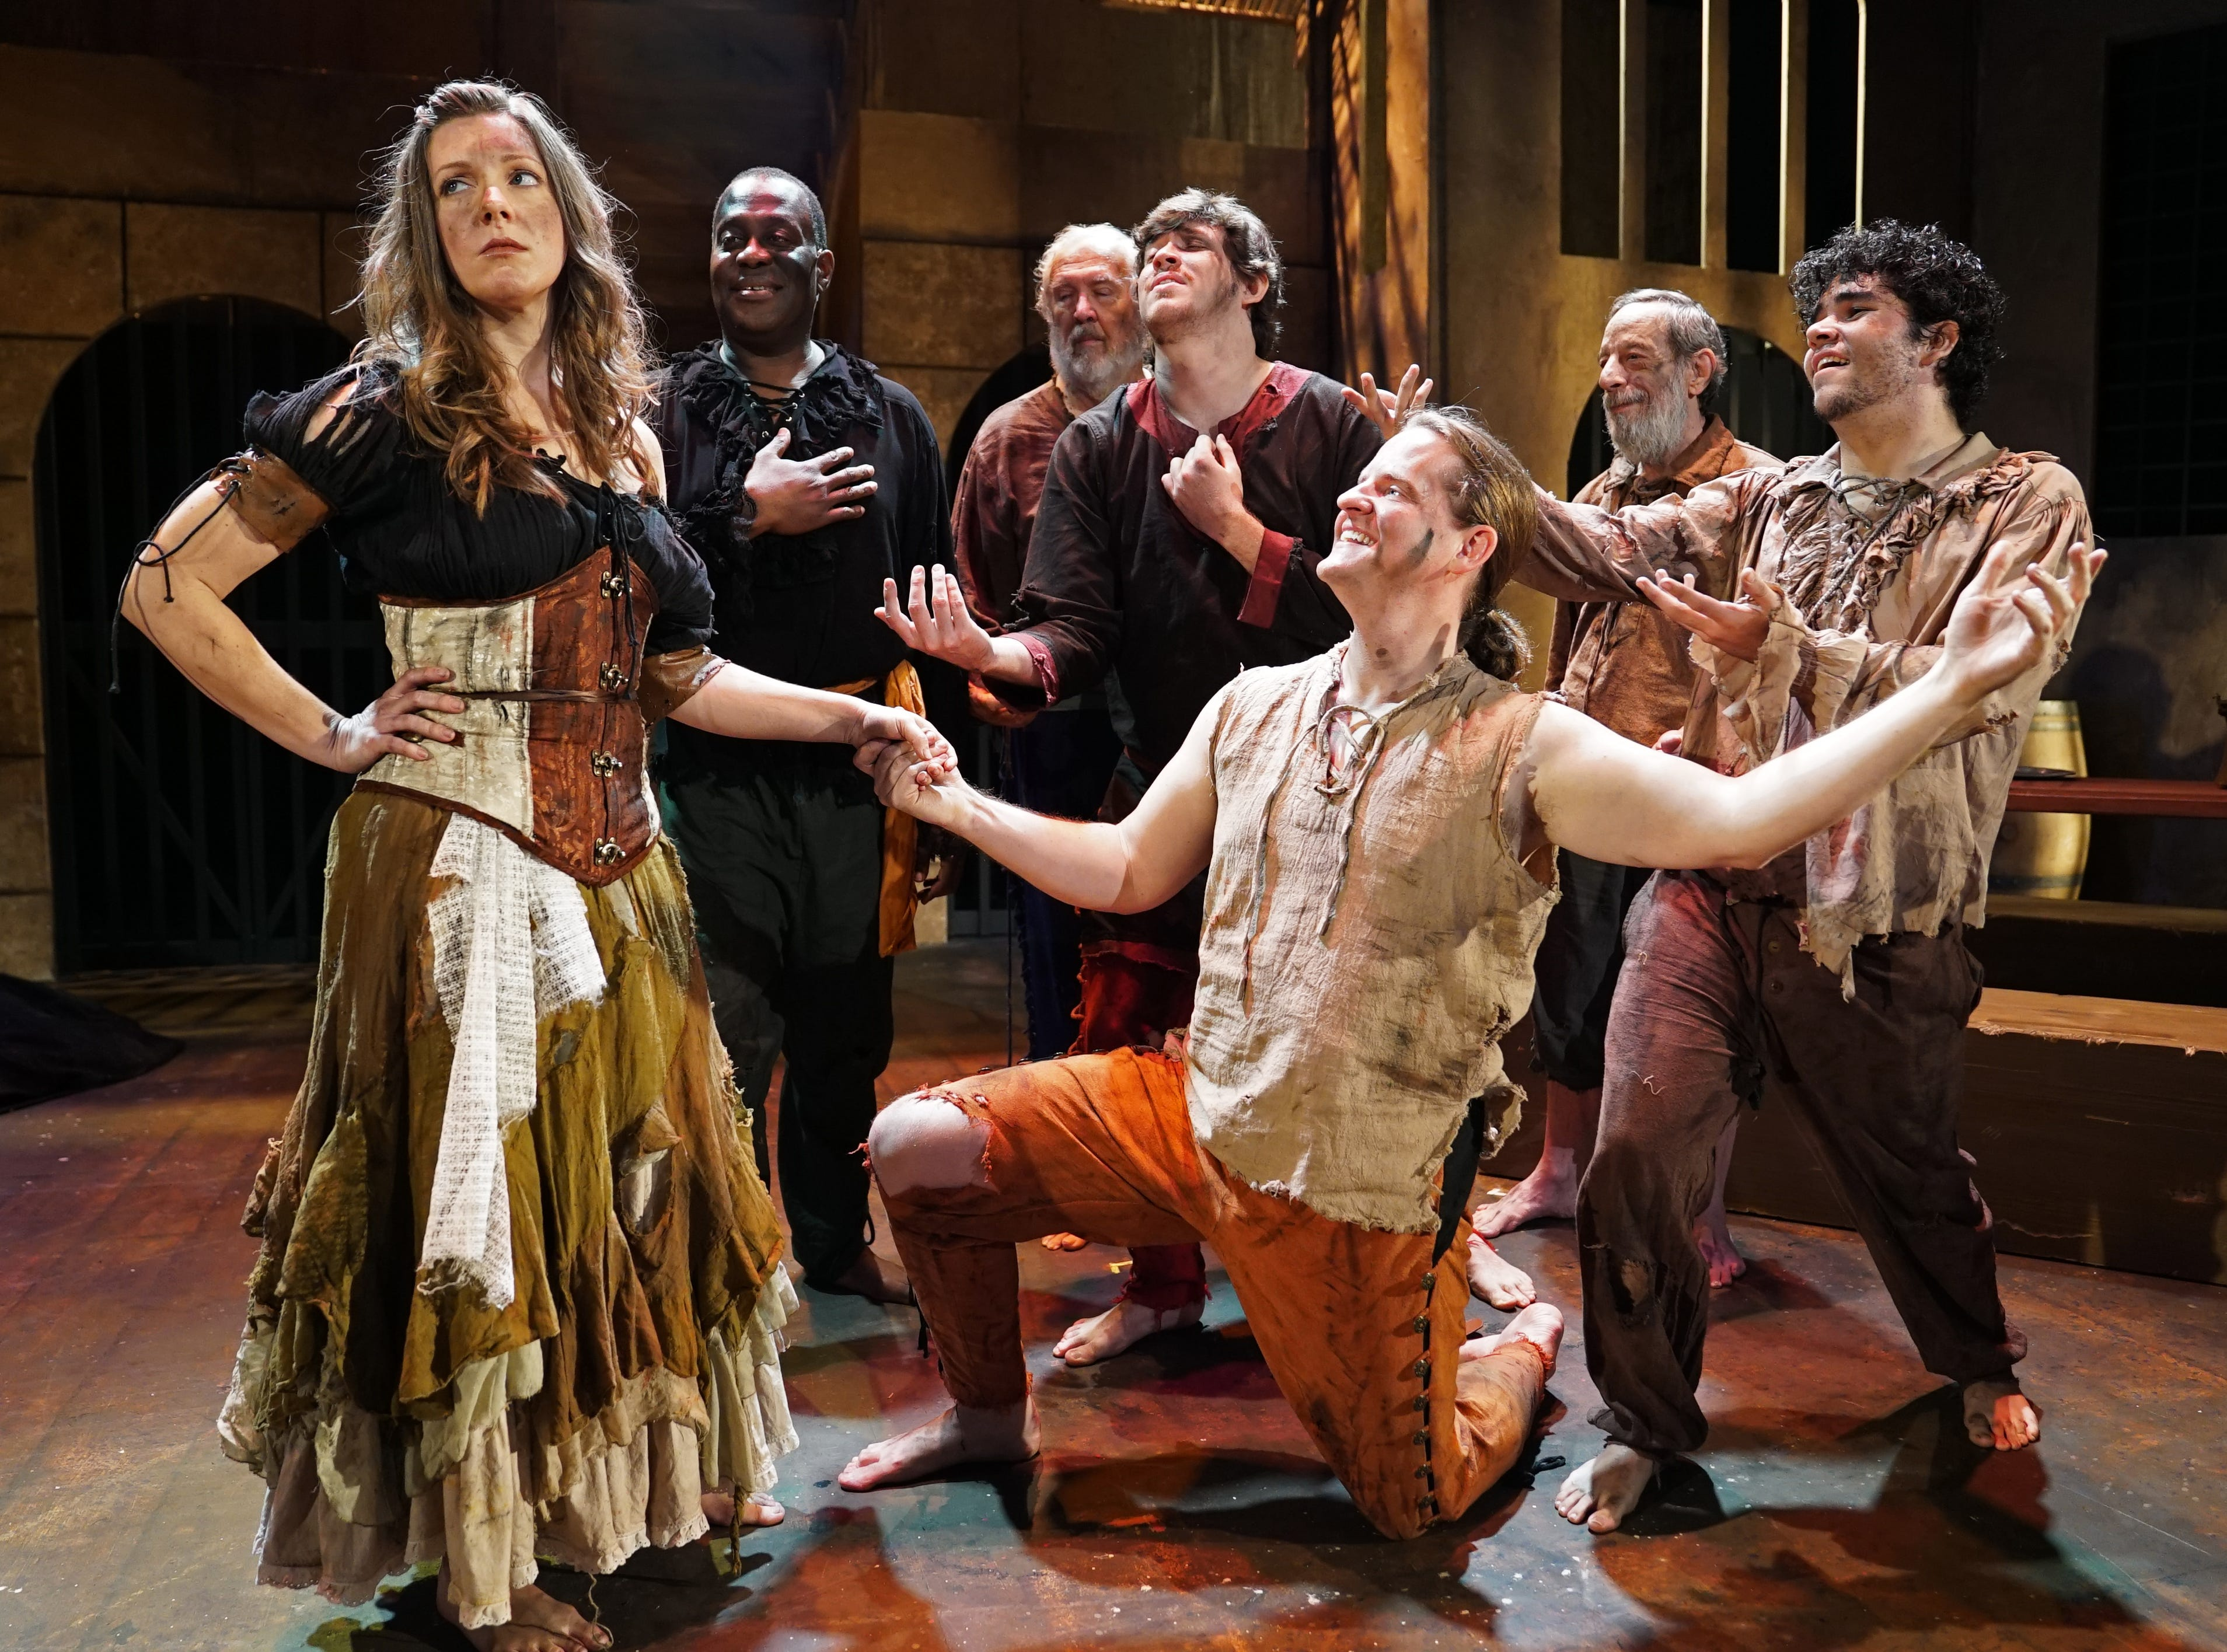 """Actors take the stage in Titusville Playhouse's production of """"The Man of La Mancha."""" The show runs through March 17th. For tickets or more information, visit titusvilleplayhouse.com"""